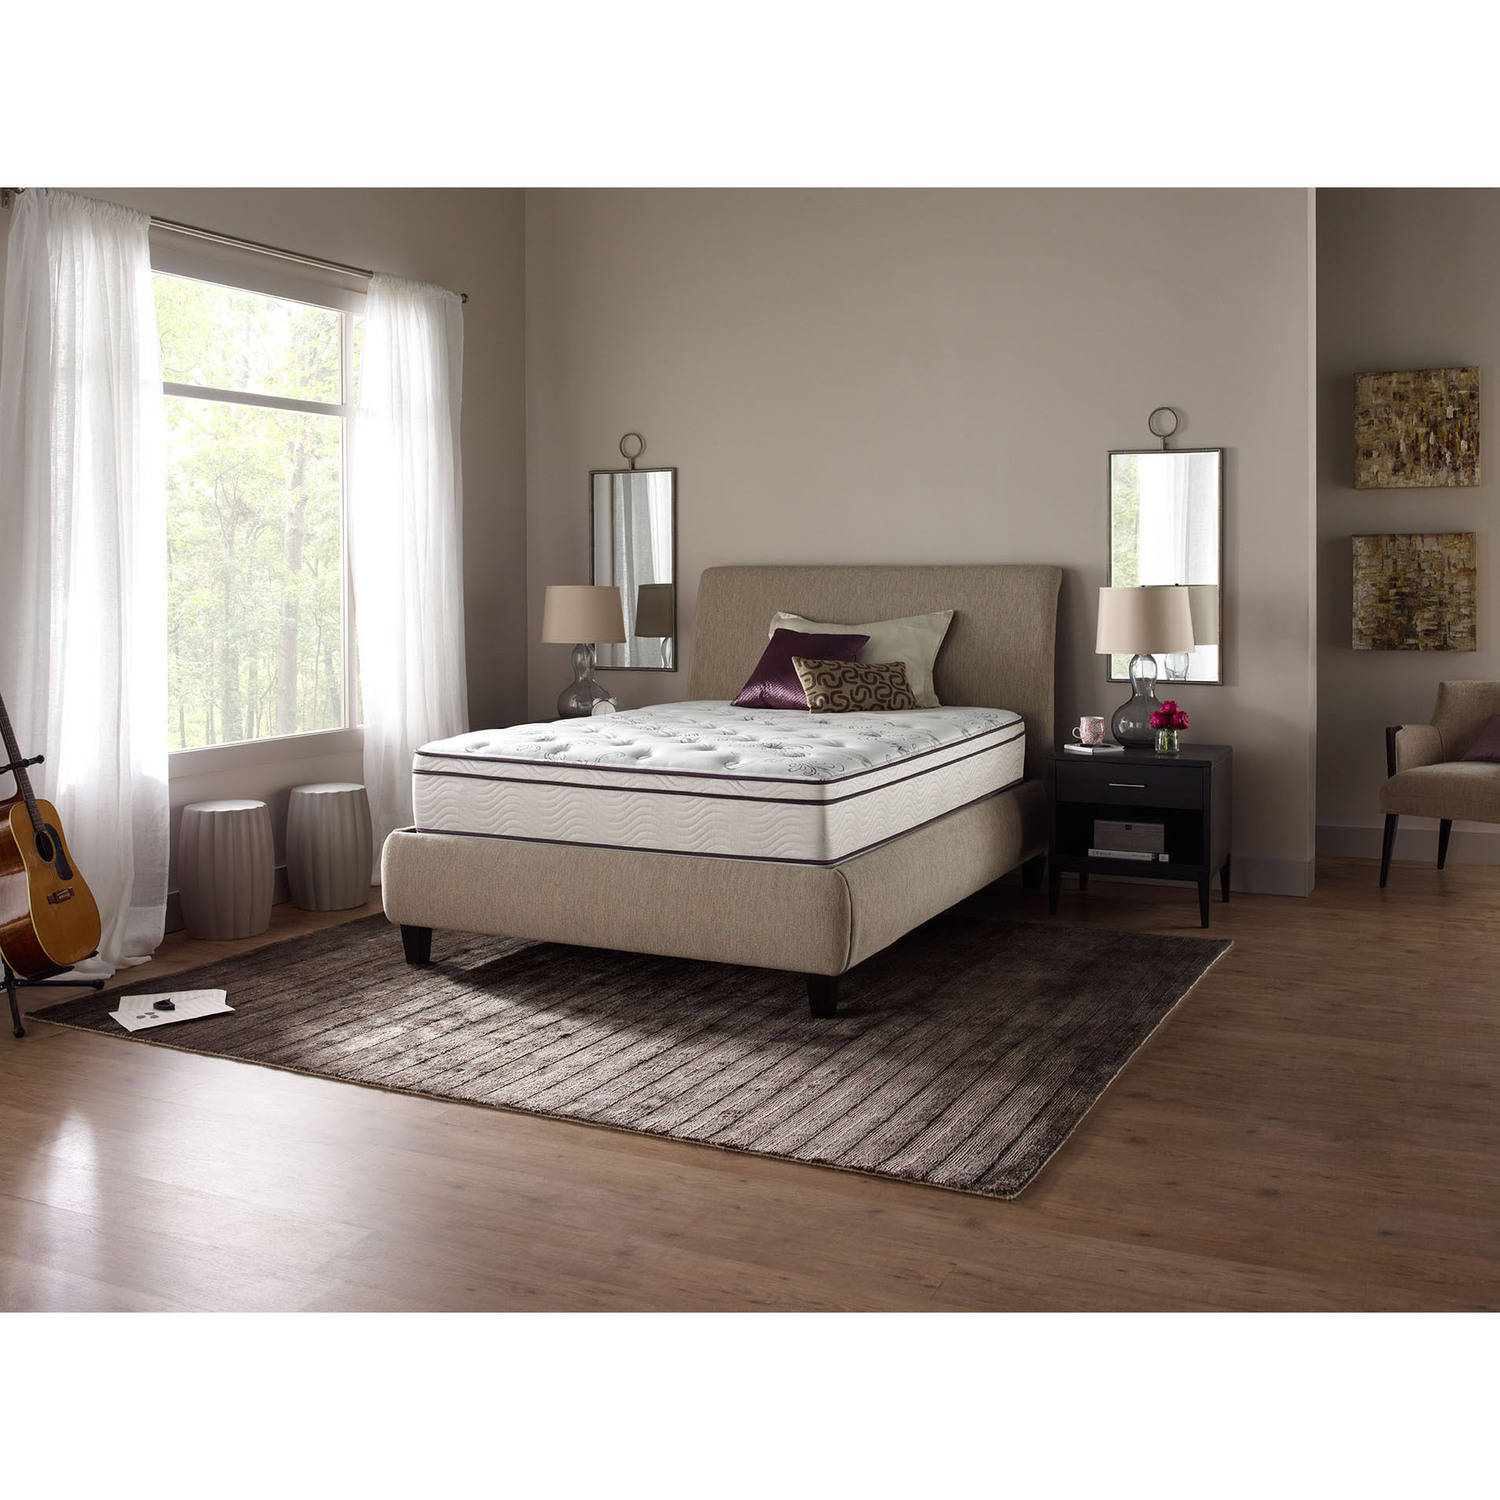 "Beautyrest Studio 12.5"" Pocketed Coil Plush Eurotop Mattress with Microgel Memory Foam"